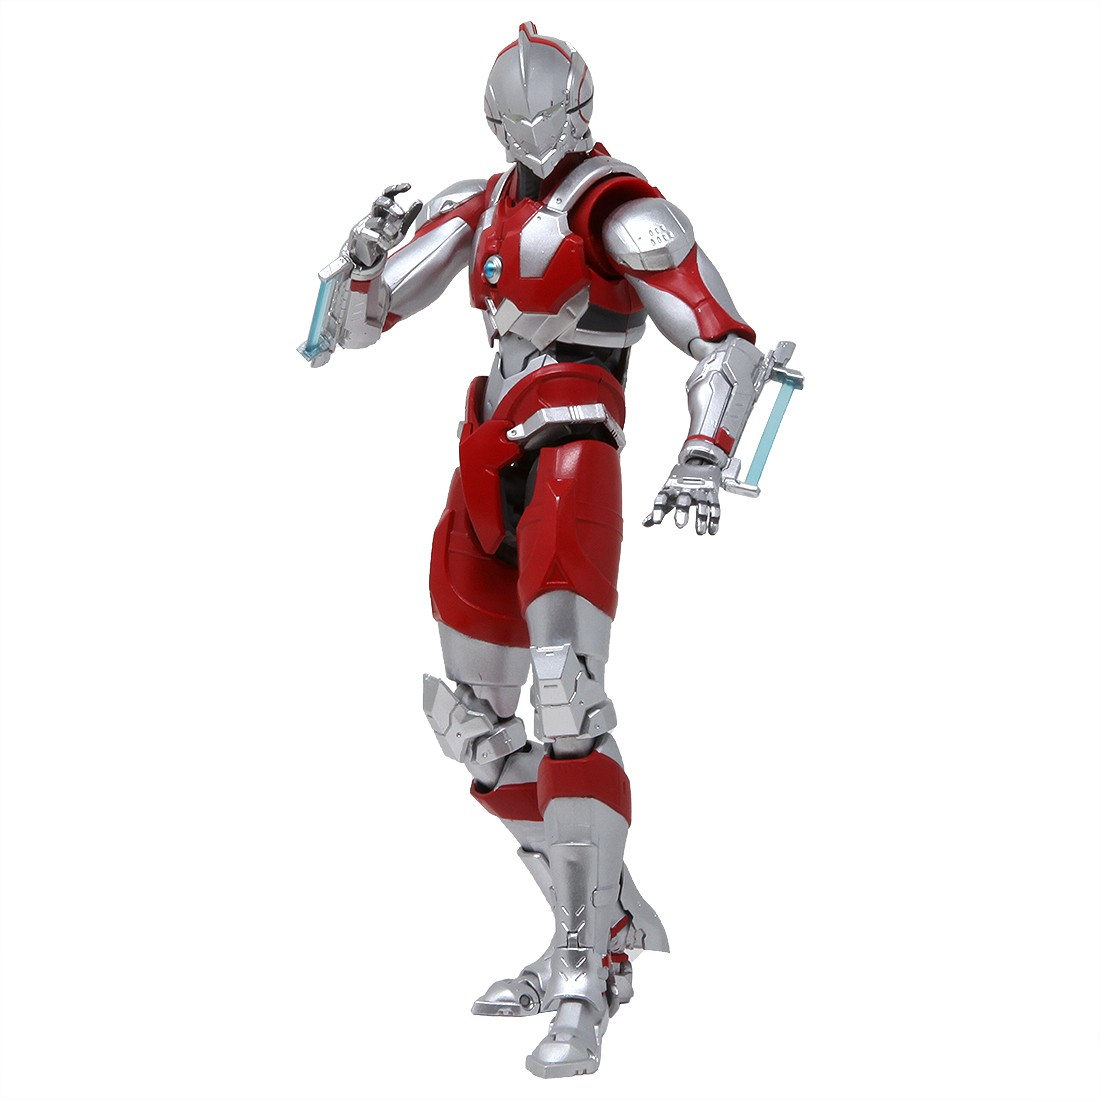 Bandai S.H. Figuarts Netflix Ultraman The Animation Ultraman Figure (silver)